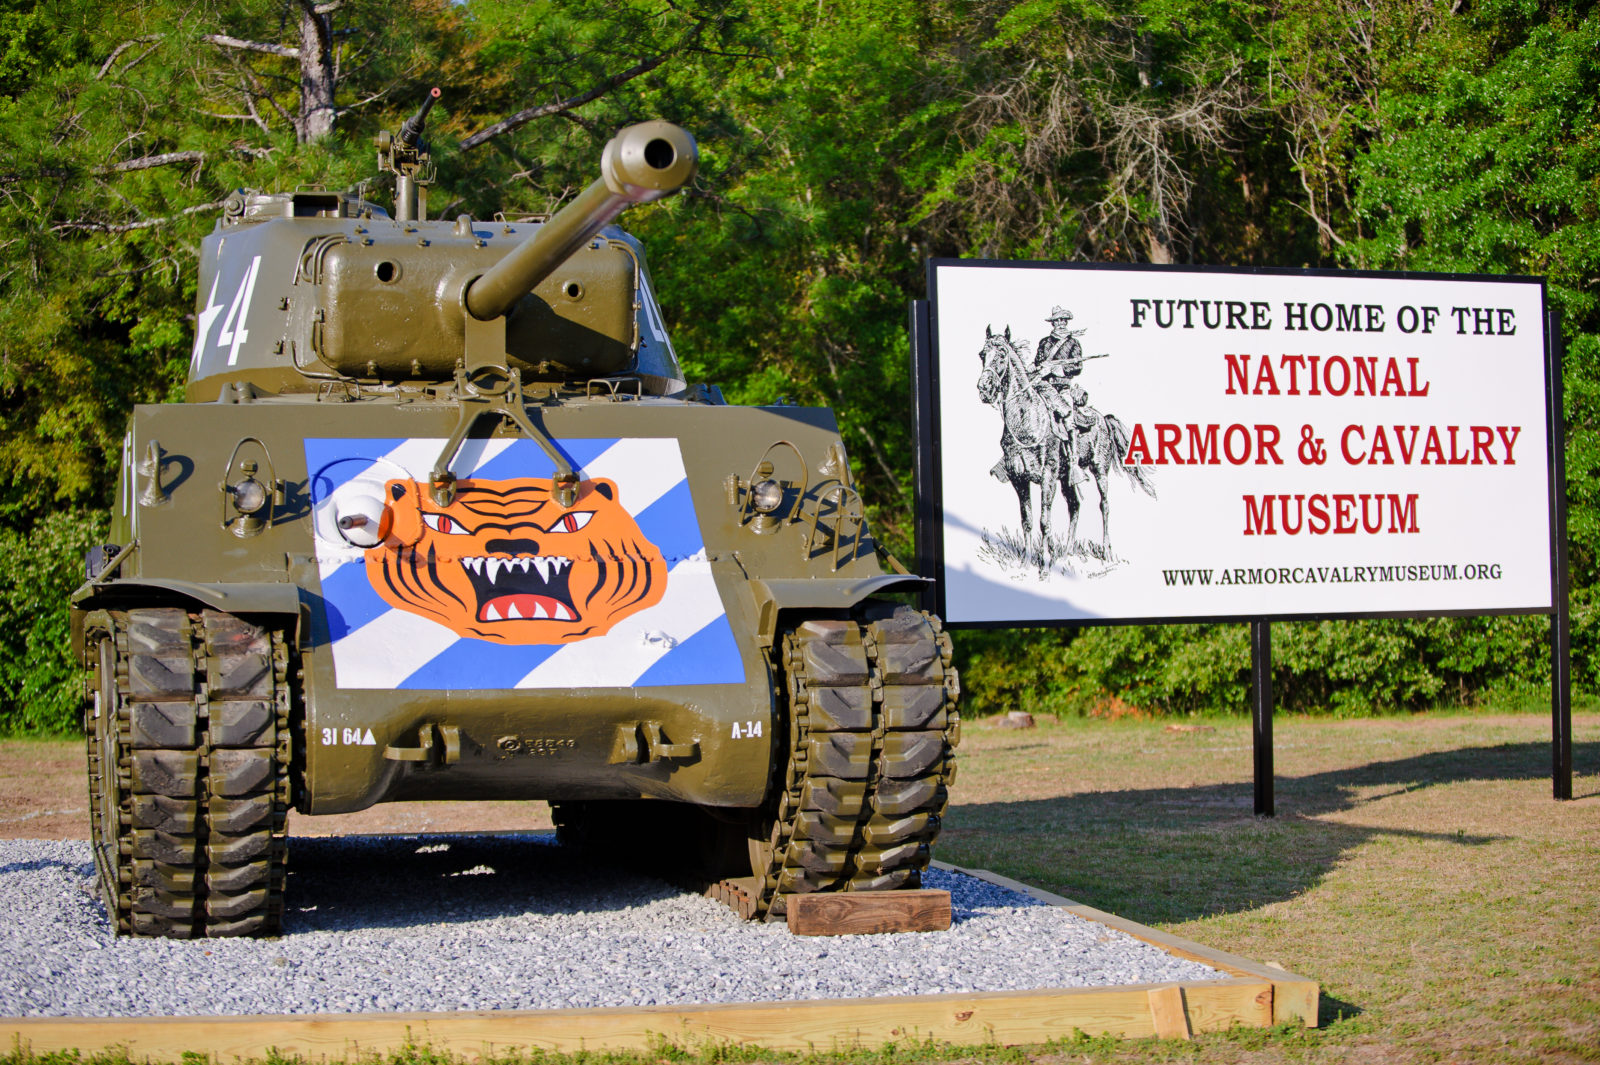 04 APR 2011 - National Armor and Cavalry Museum sign, MCoE, Fort Benning, GA.  Photo by John D. Helms - john.d.helms@us.army.mil